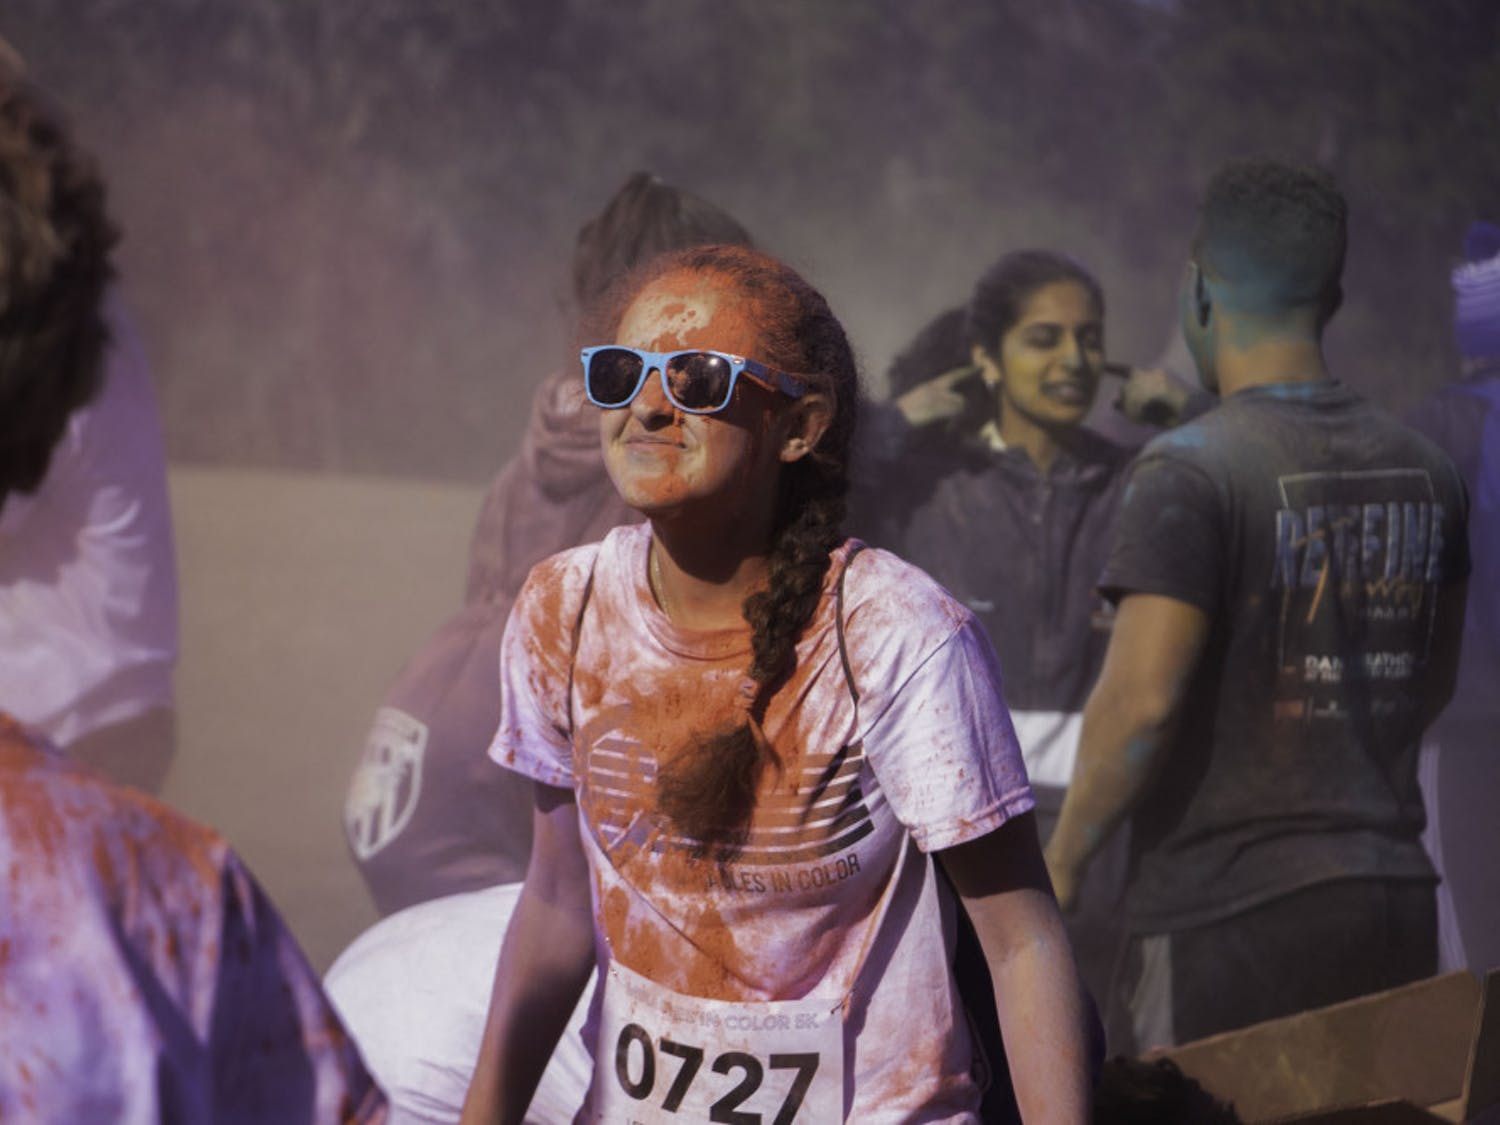 Dance Marathon hosted its first annual Miracles in Color 5K run at Flavet Field on Sunday, February 9. The run included two waves: the first for runners wanting to complete the race and the second for runners wanting to go at their own pace. The proceeds from the event will be donated to UF Health Shands Children's Hospital. The registration fee included a DJ, food and a T-shirt.